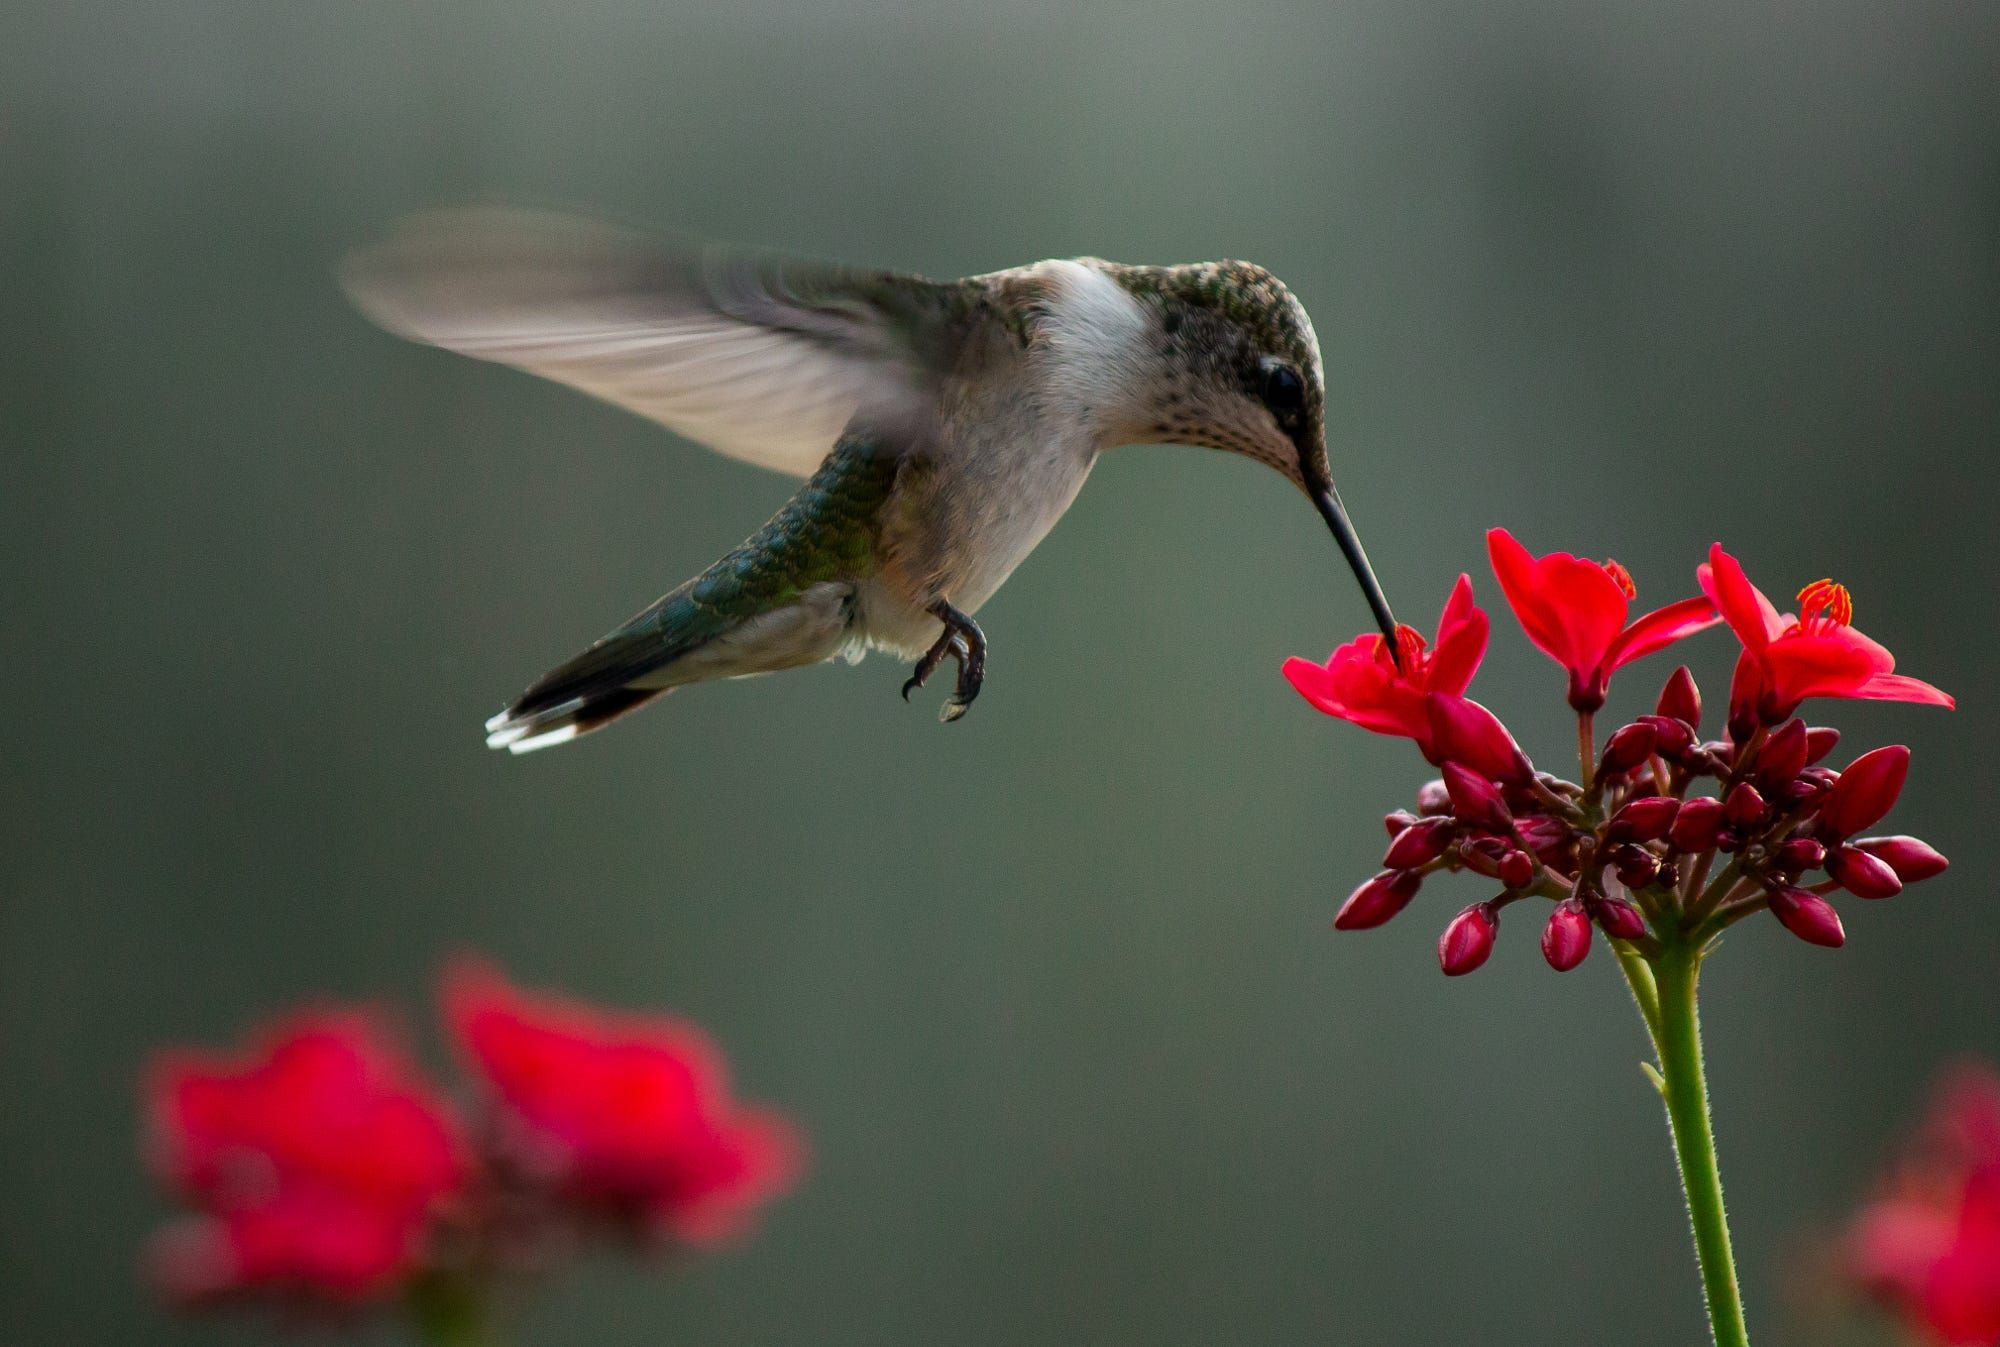 Southern migration of the hummingbirds last Fall. Had